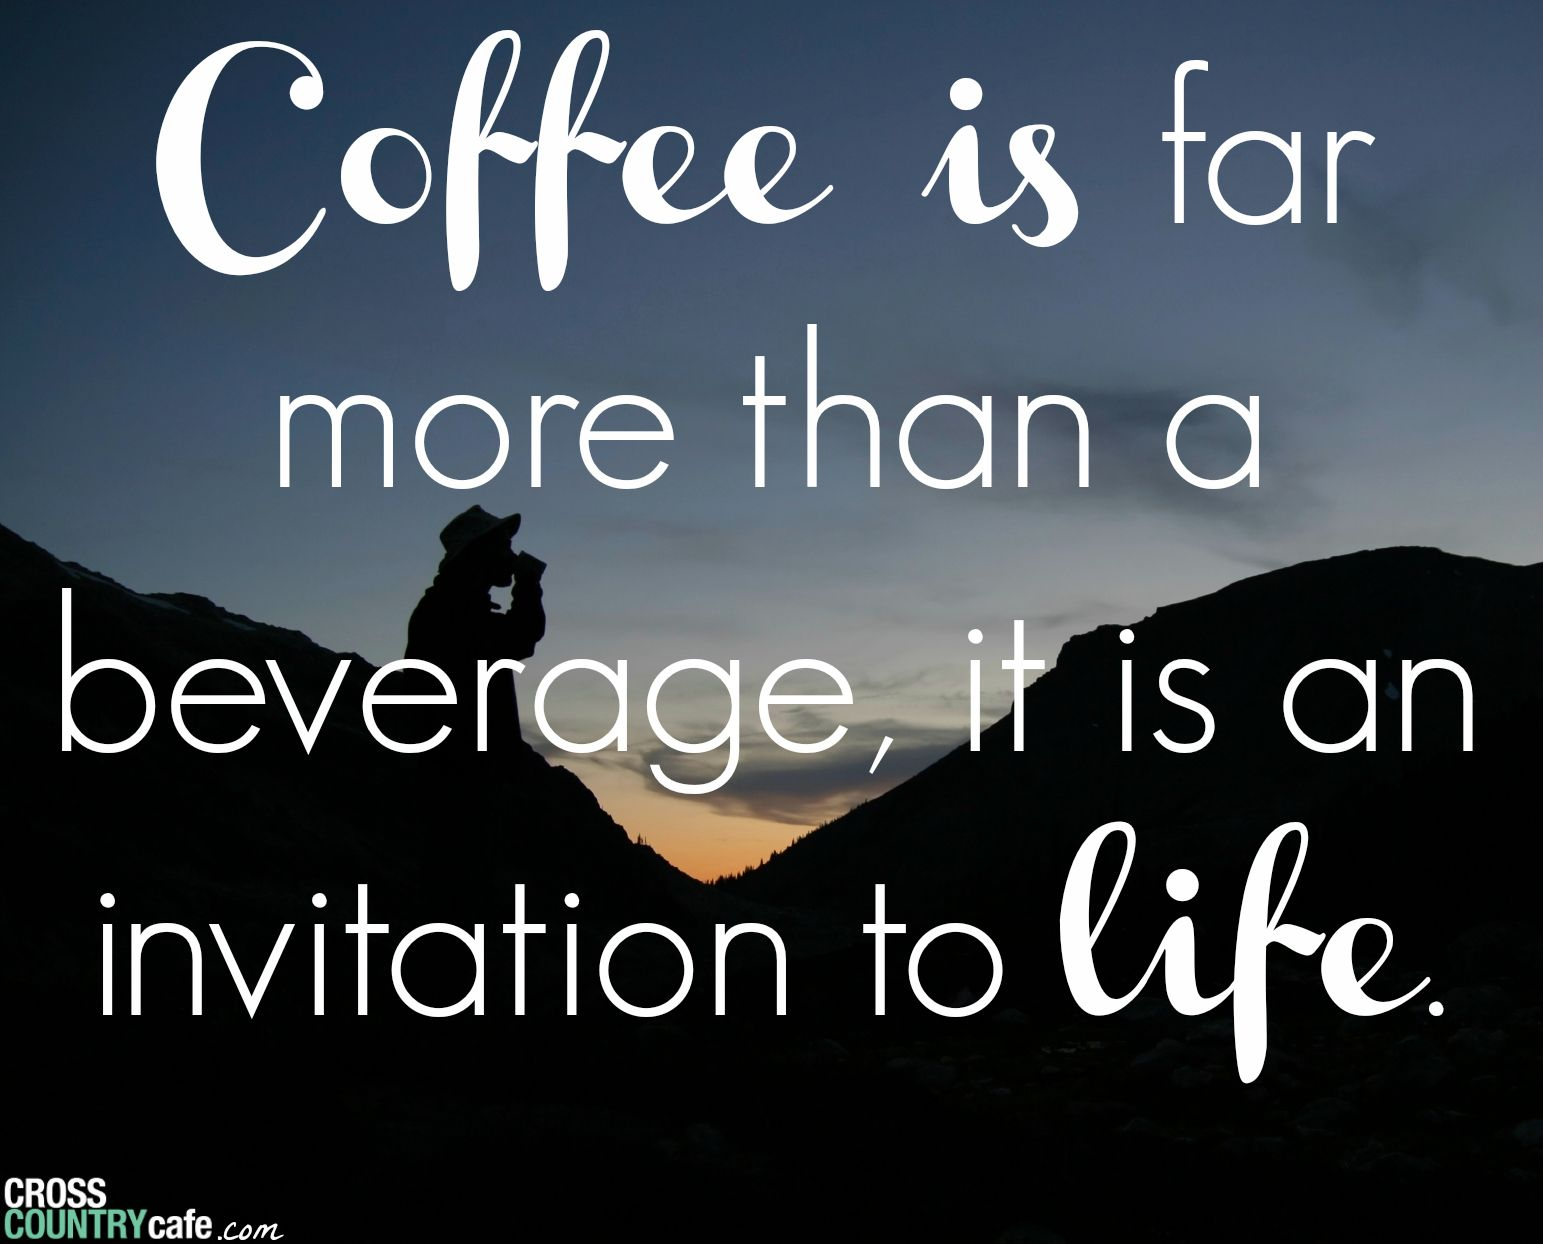 Coffee is an invitation to life I rsvp everyday My style with